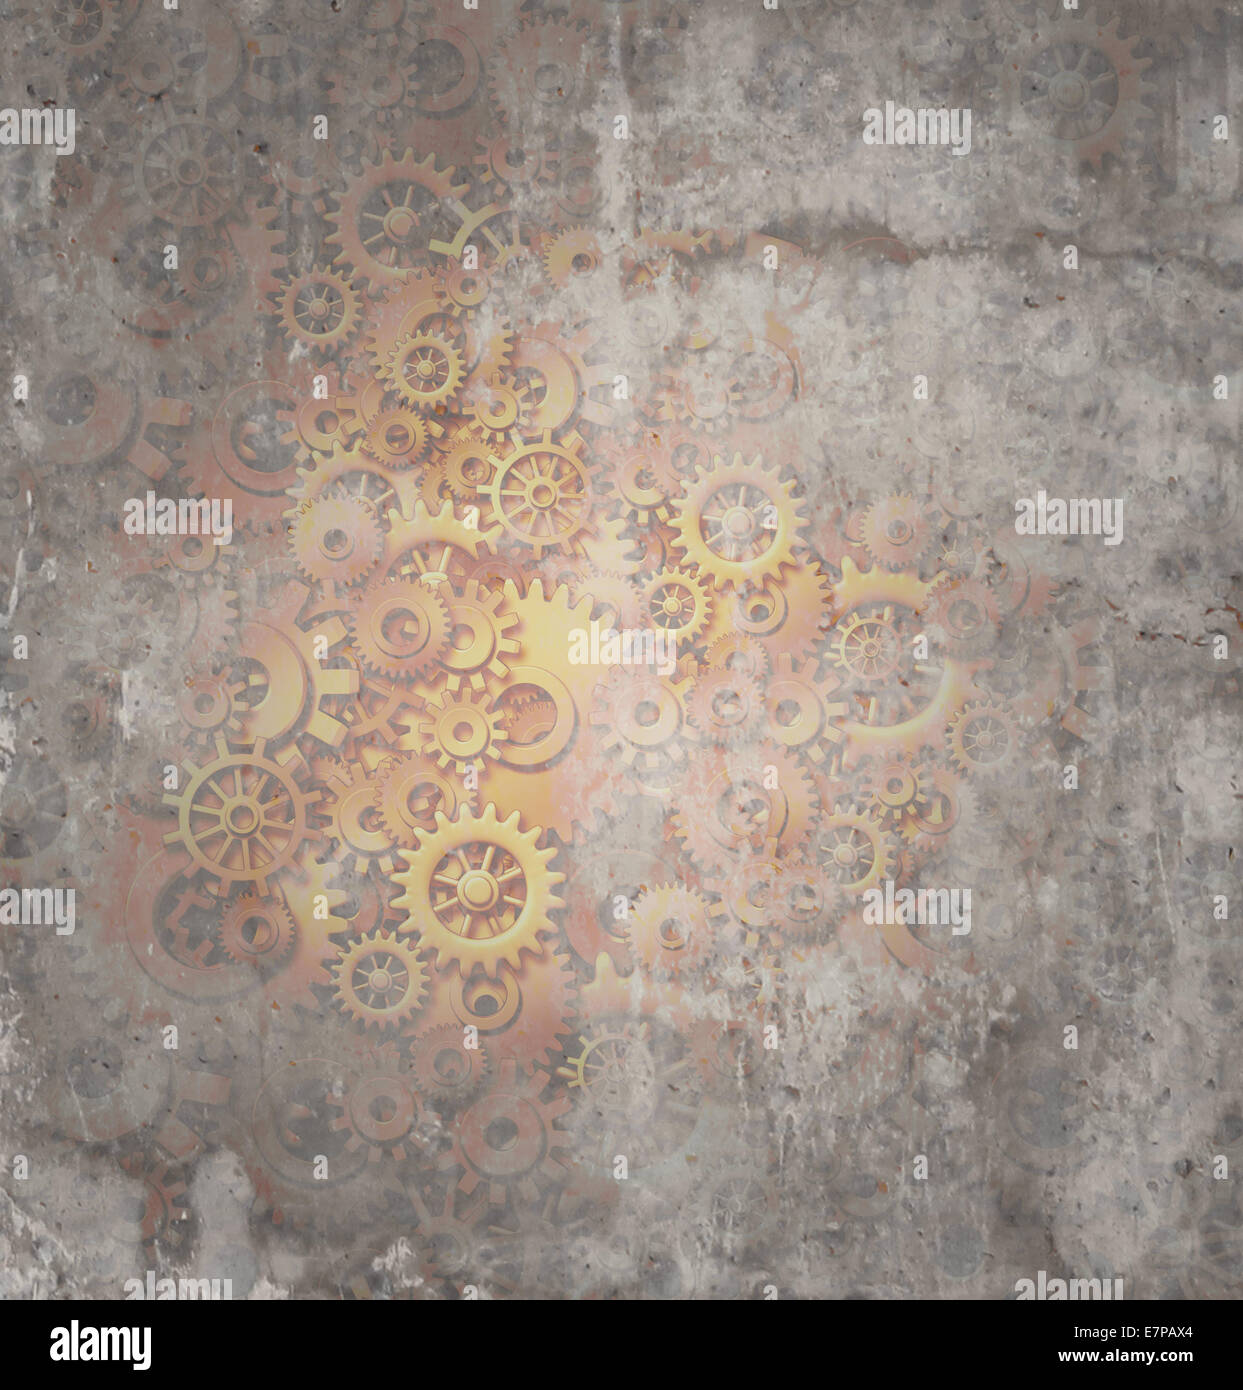 Steampunk grunge background as a rustic texture science fiction concept made of dirty metal copper gears and cogs - Stock Image